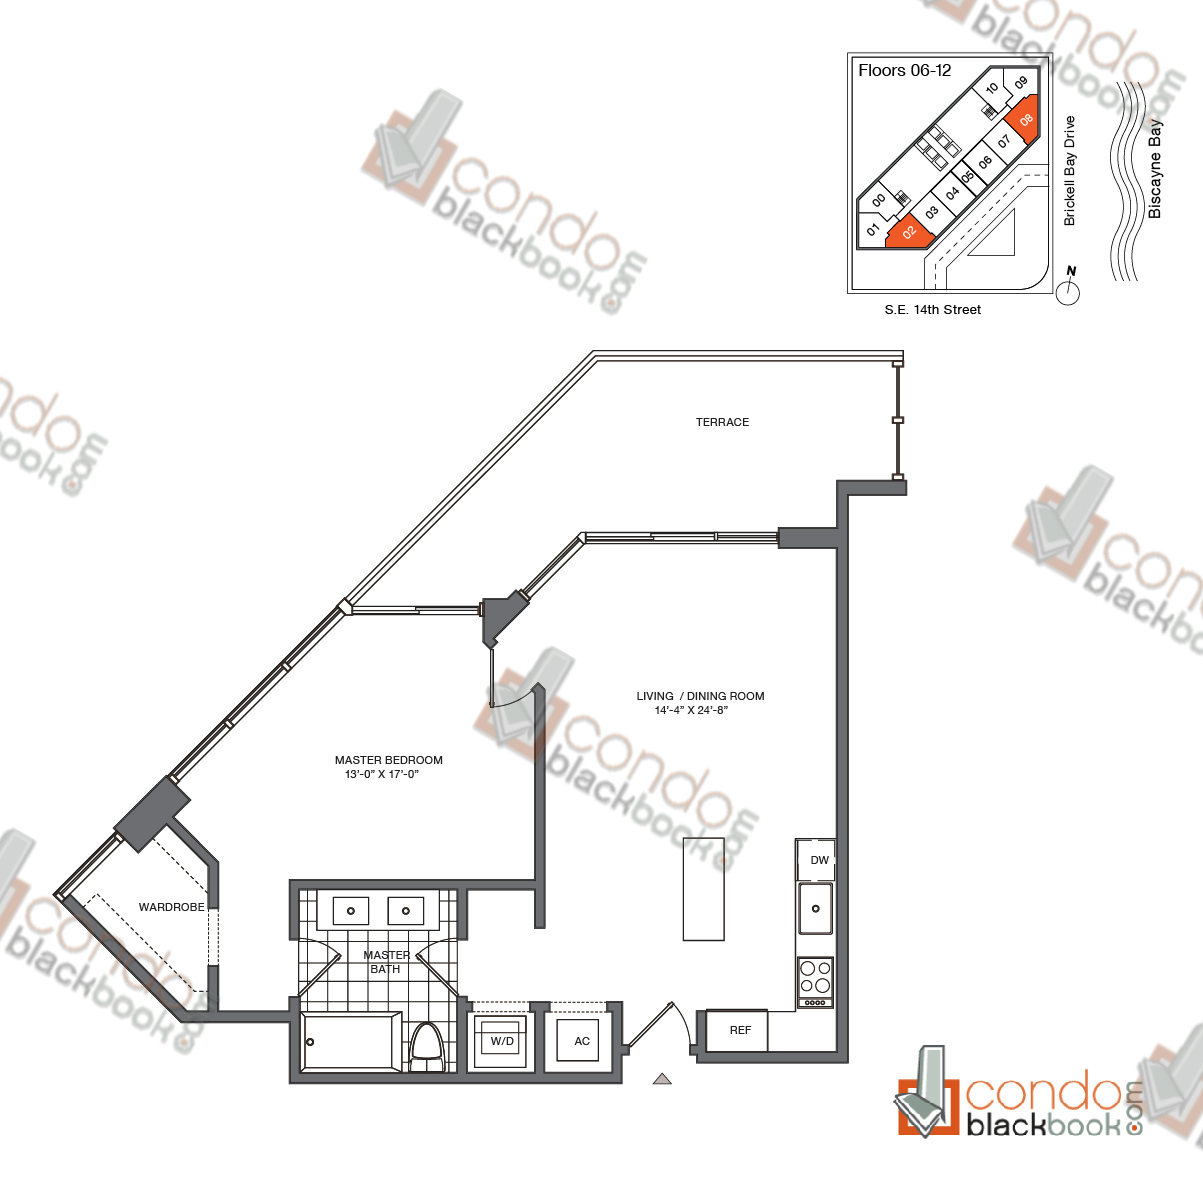 Floor plan for Brickell House Brickell Miami, model A8_6-12, line 02, 08, 1/1 bedrooms, 810 sq ft